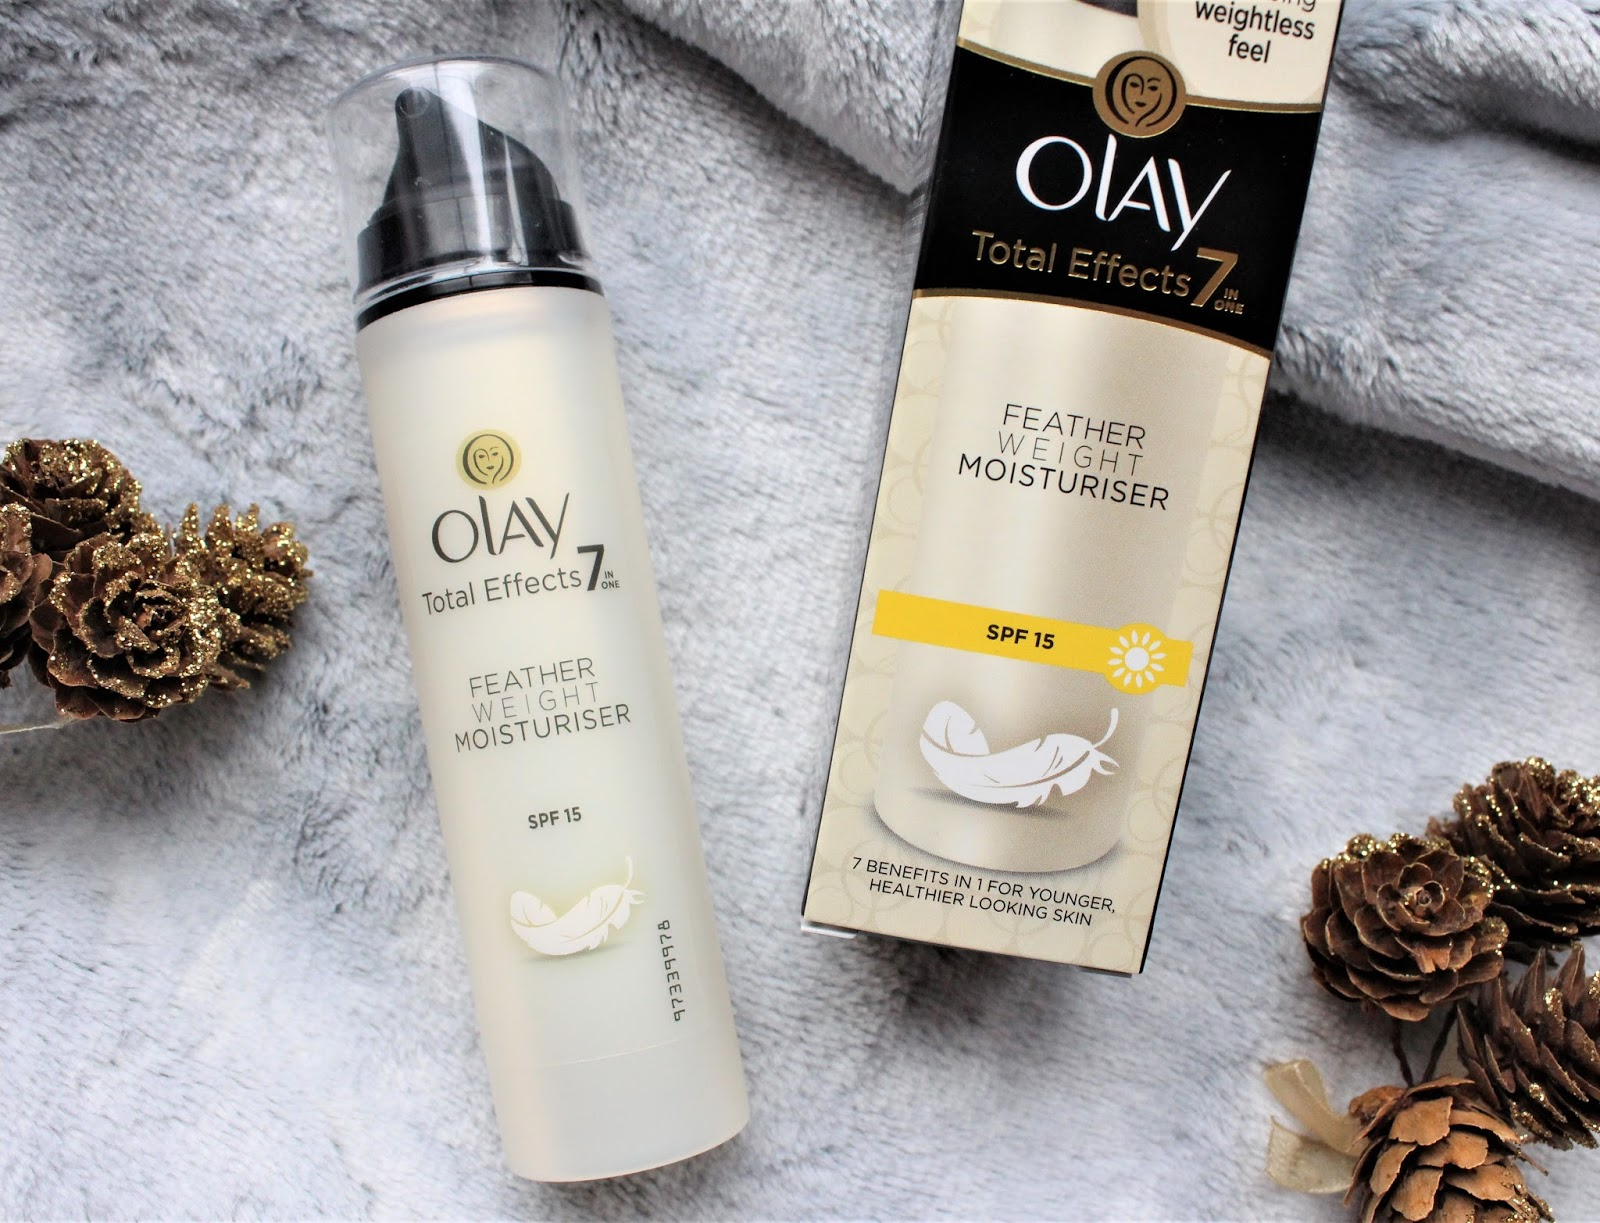 olay featherweight moisturiser review